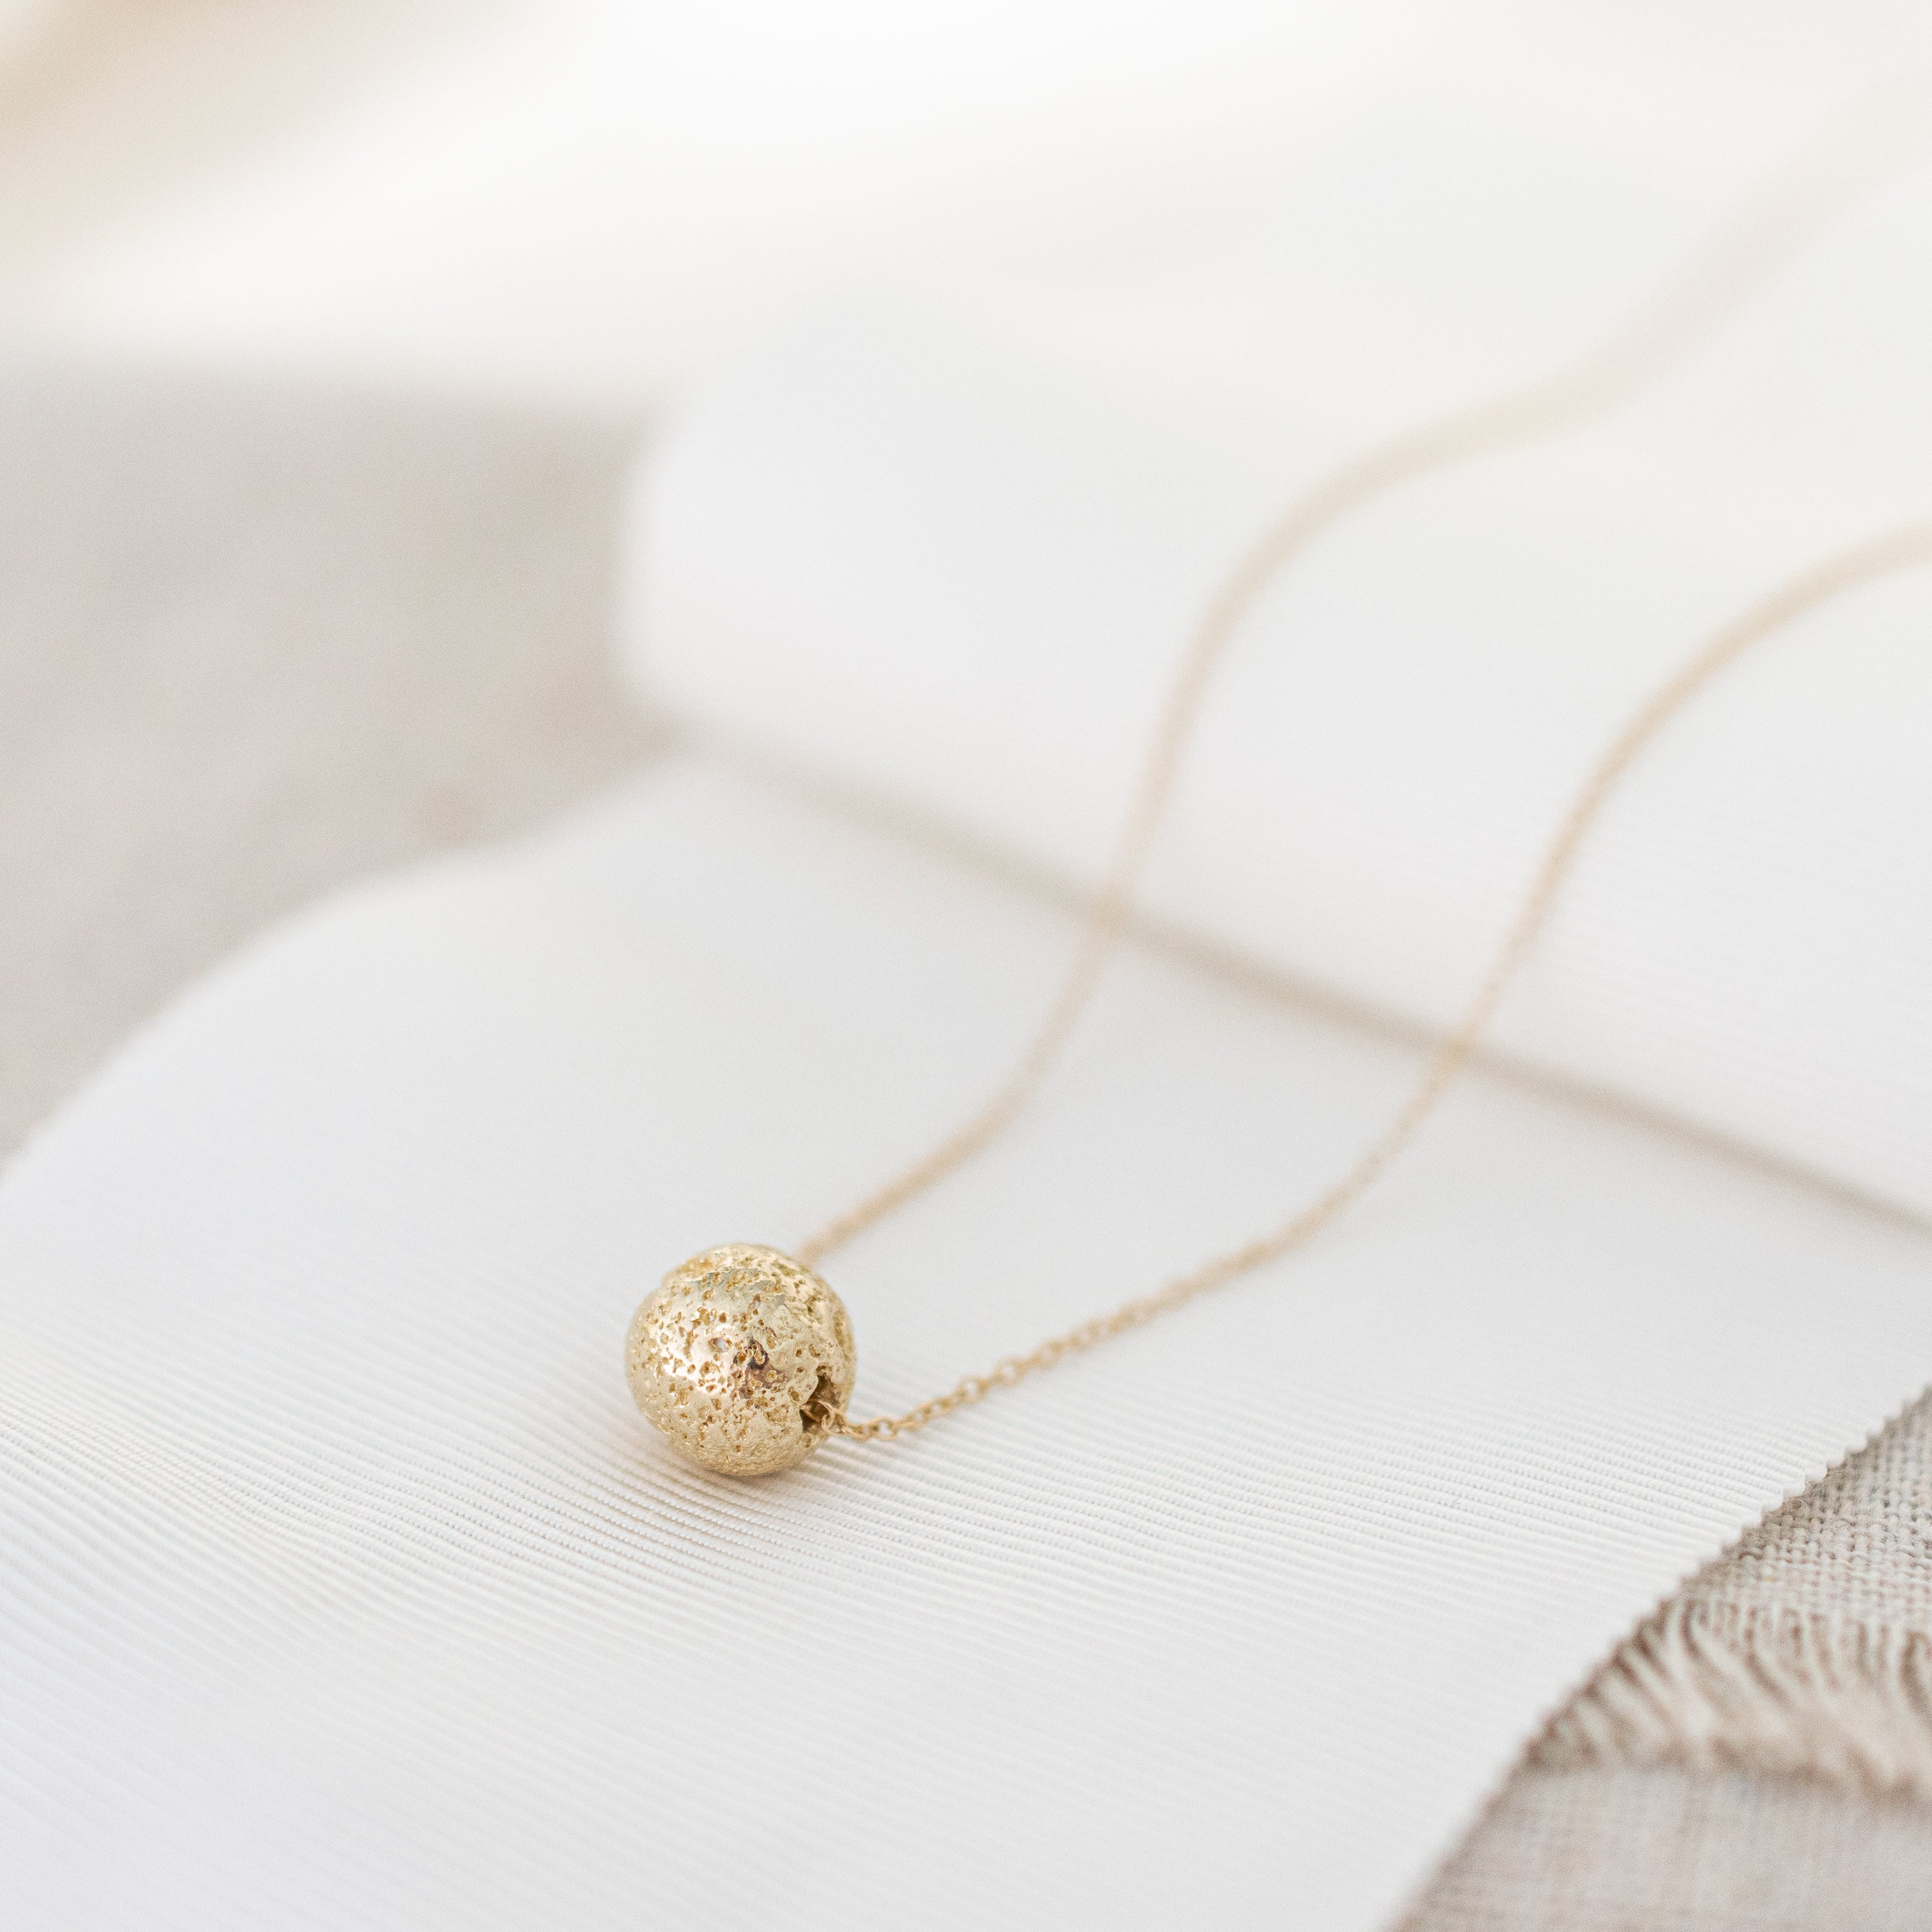 'Courage' 14k Gold Lava Bead Necklace | 14k Gold